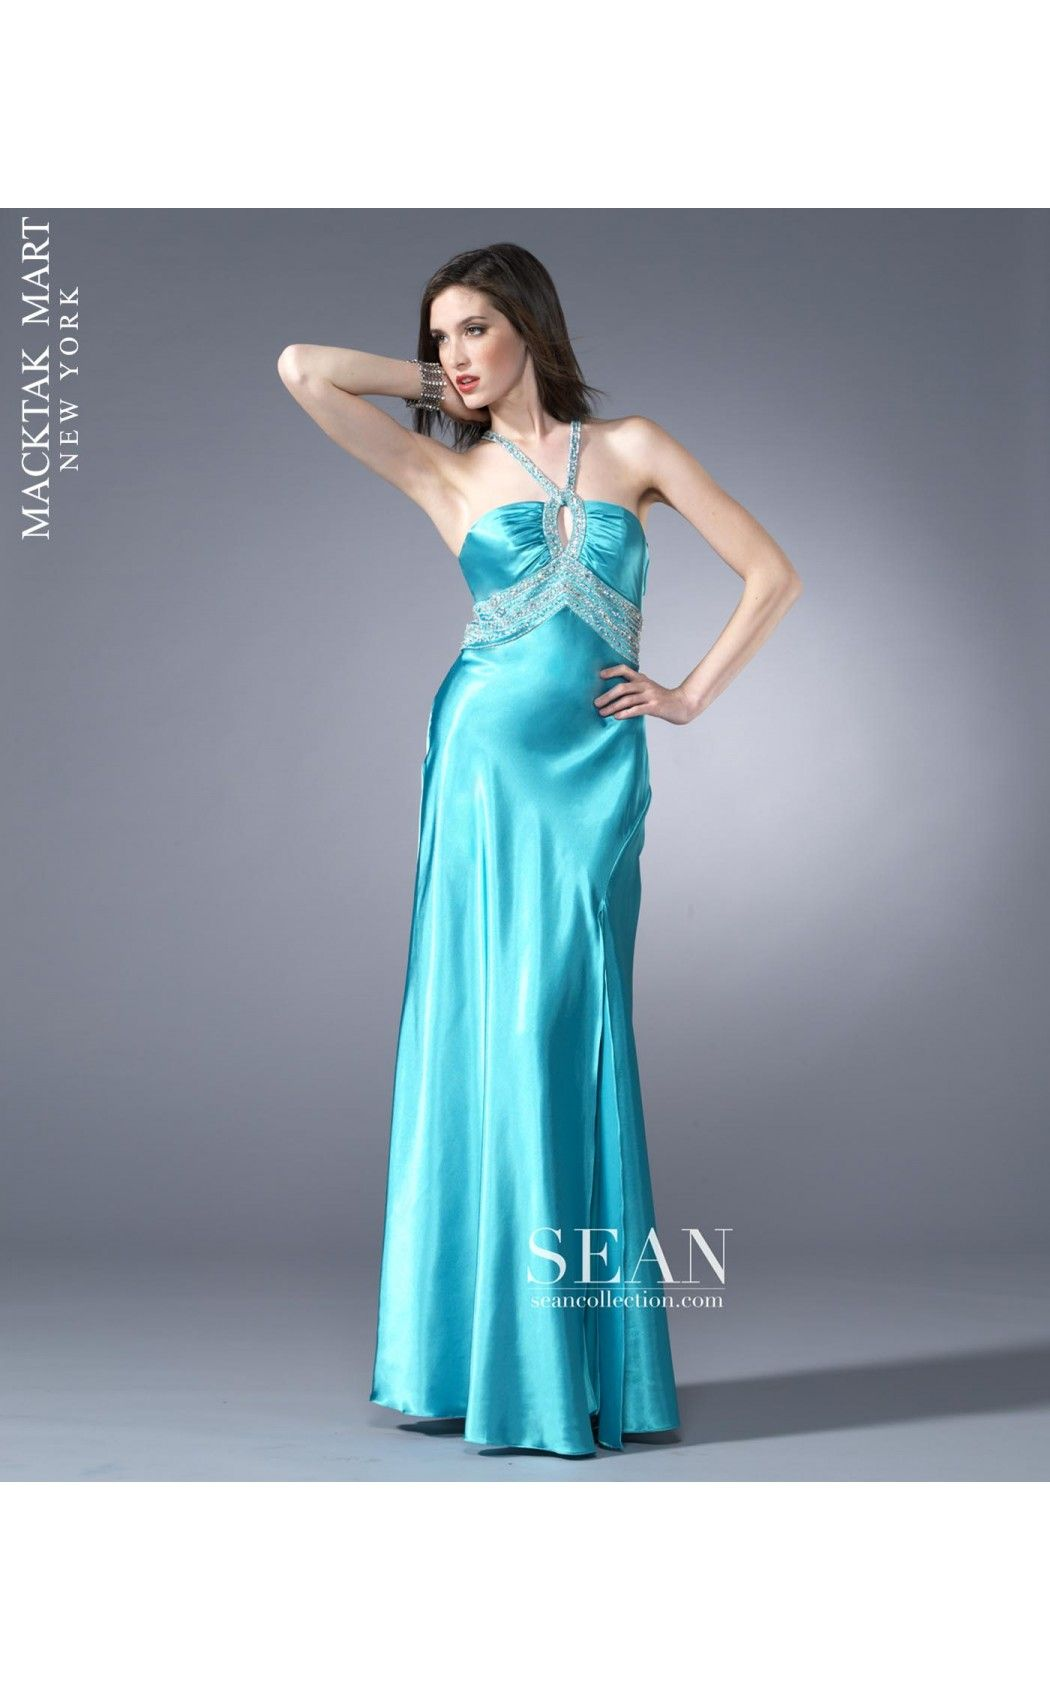 Sean Express 90181 long aqua color dress #prom | MackTak New ...